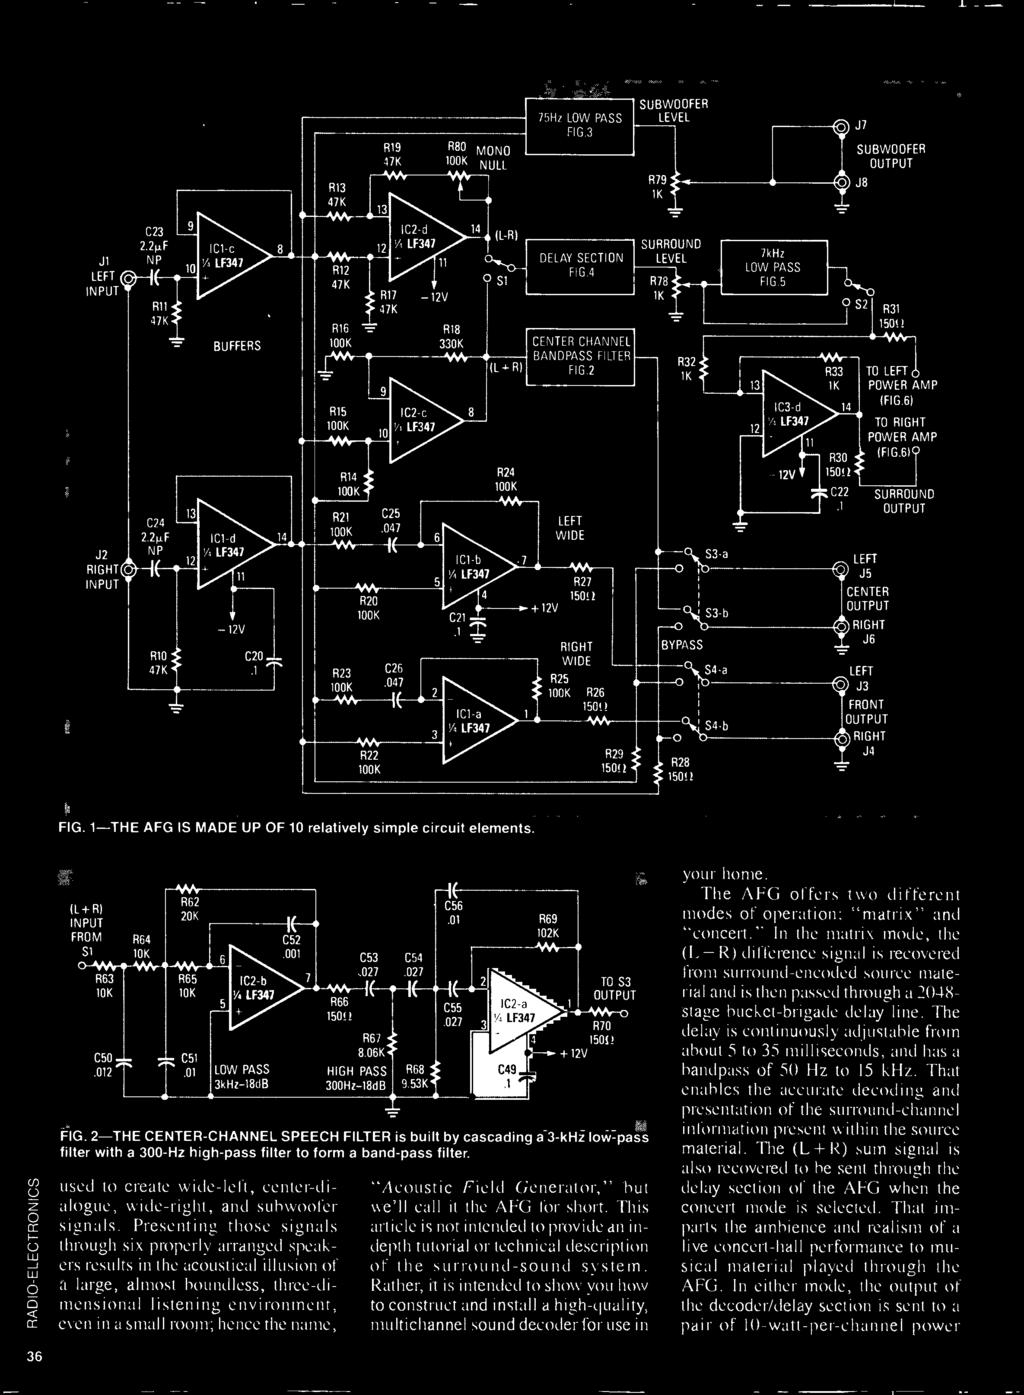 Build R Es Acoustic Pdf Schematics Of Delabs Isolated Dual Power Supply From 5v 047 946 2 R22 100k 5 C21 Ici B Lf347 4 Z